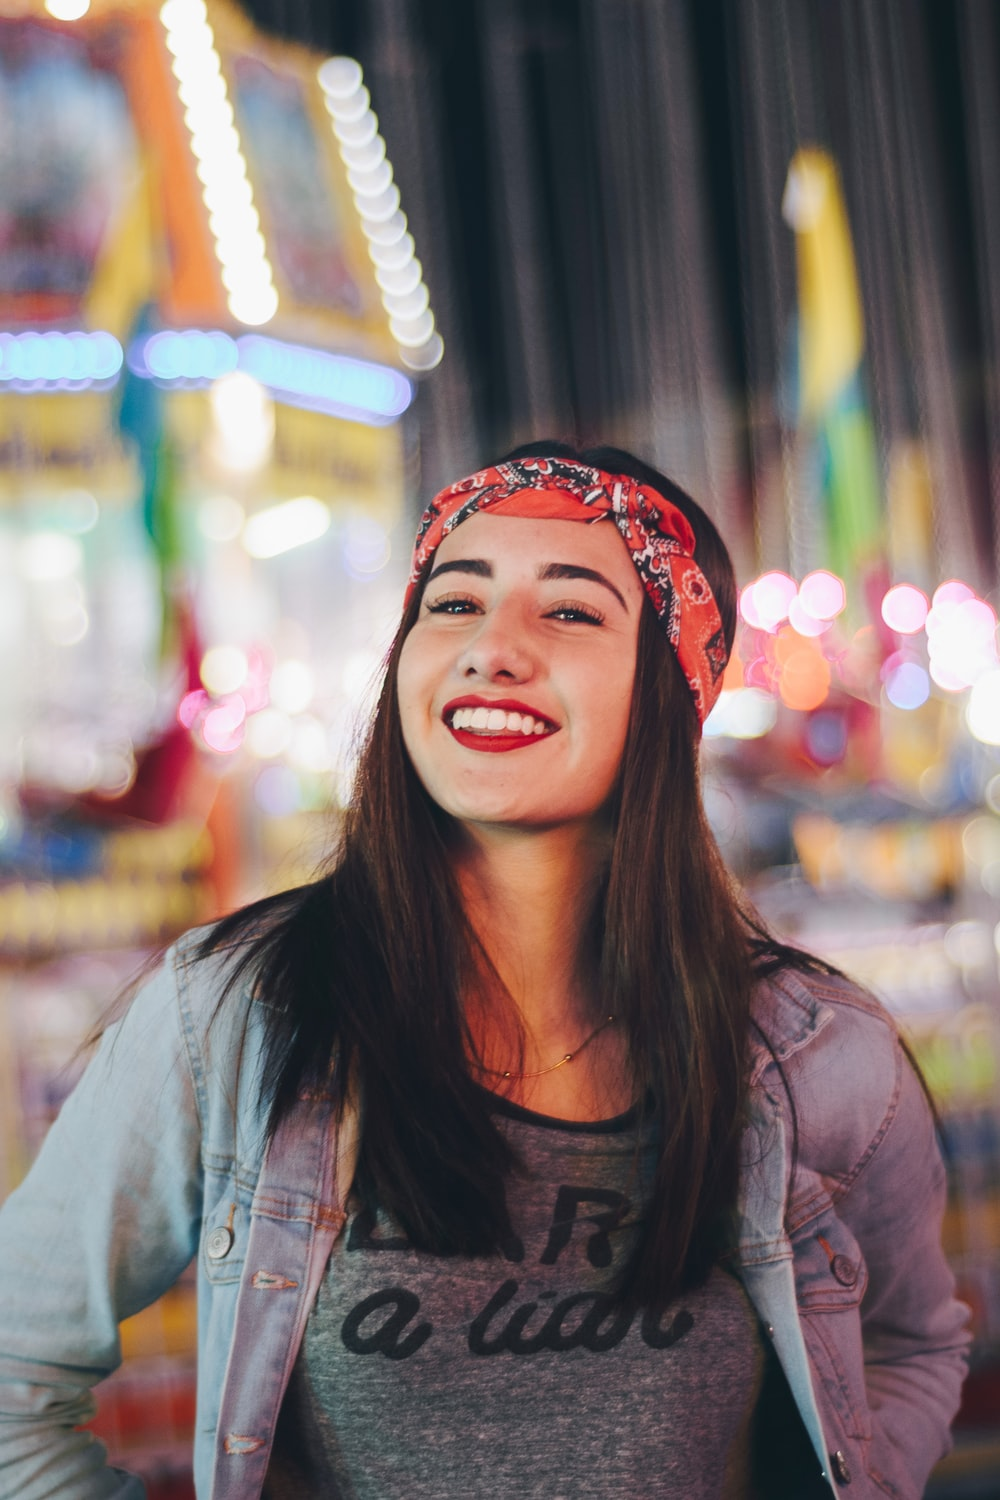 selective focus photography of smiling woman wearing red and black bandana